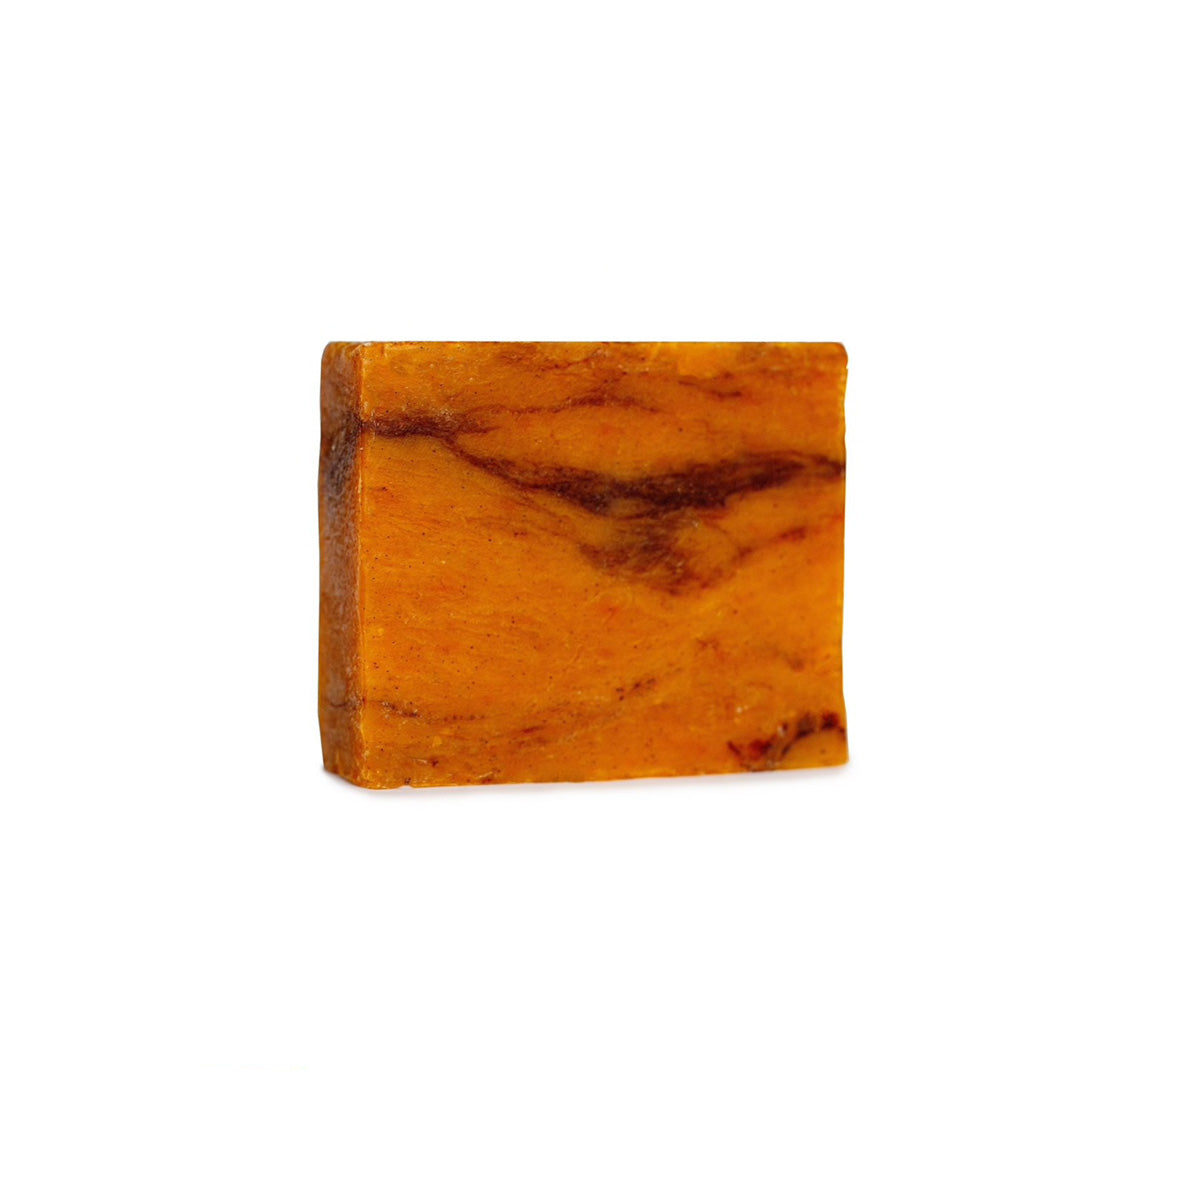 Appalachian Soap Bar w/Cloth